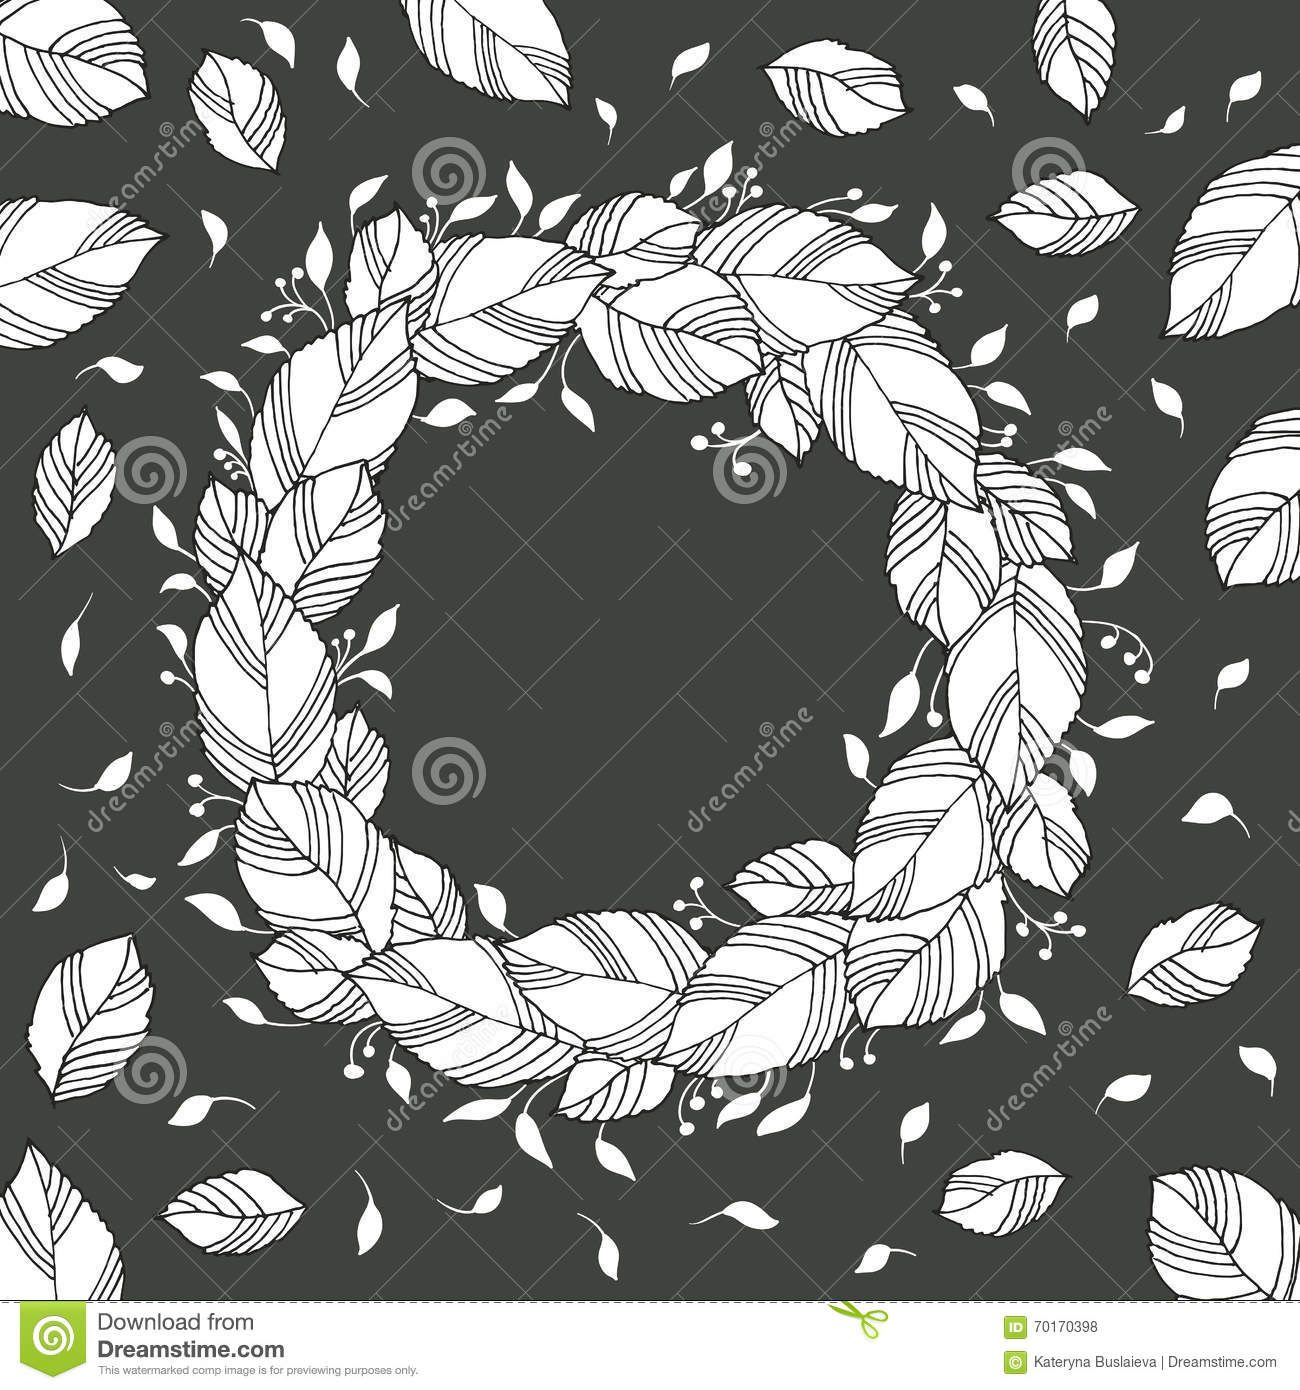 Black and white floral wreath stock vector image 65241515 - Black Illustration Leaves Vector White Wreath